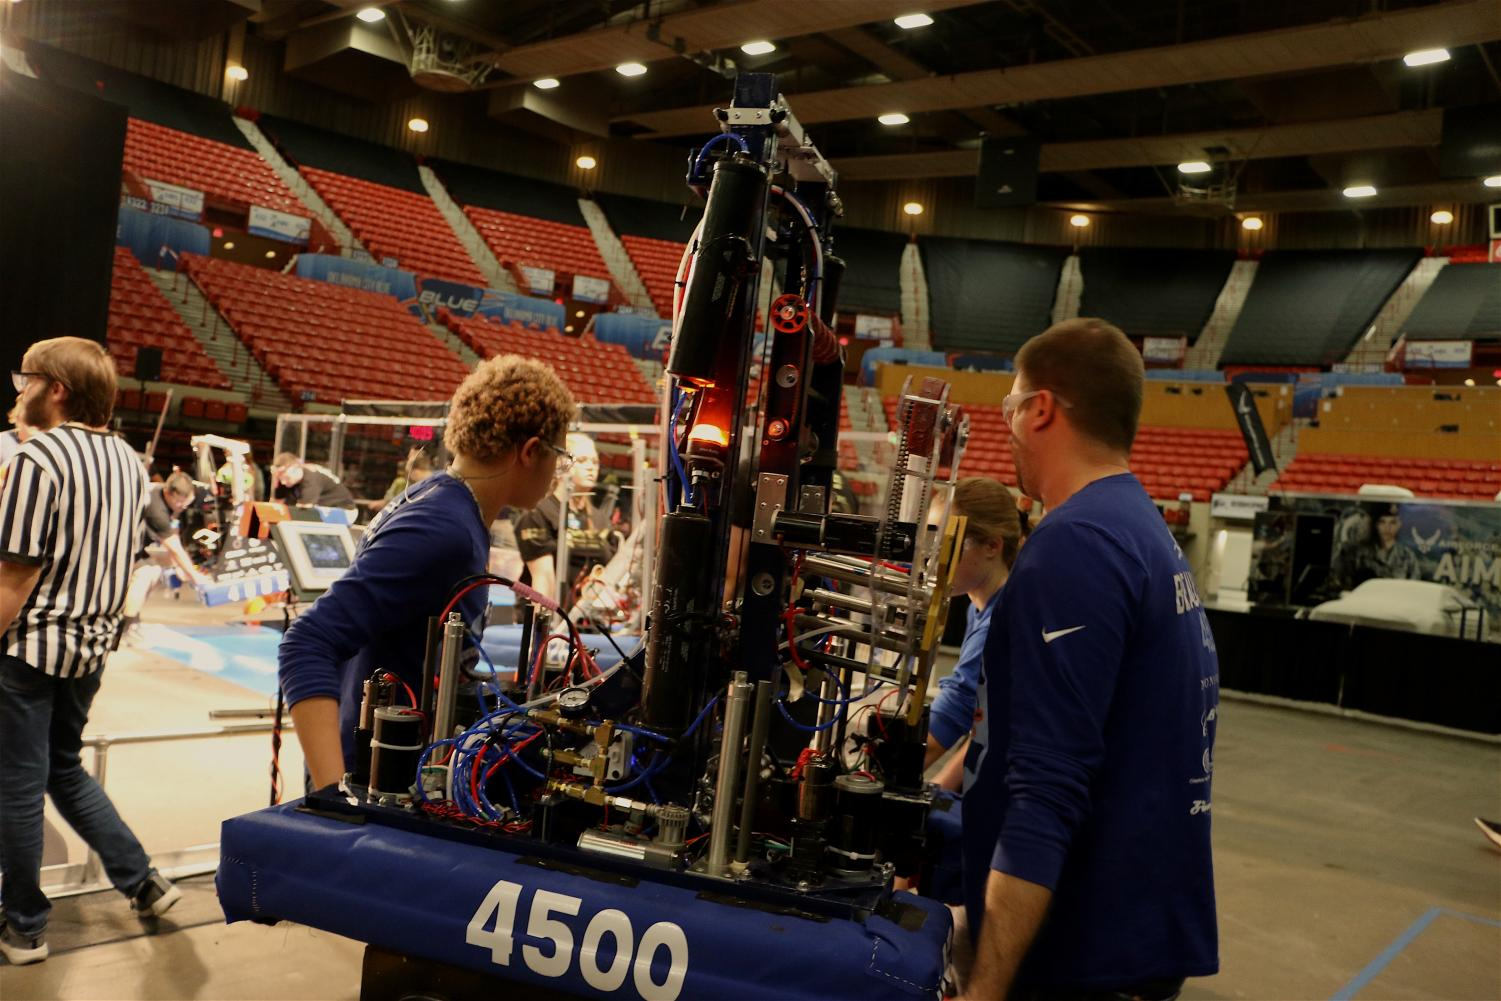 The+Robohounds+carry+their+bot+towards+the+competition+field+before+a+match+in+Oklahoma+City.+From+left+to+right%3A+junior+Max+Walter-Morrissey%2C+sophomore+Olivia+Zindel%2C+engineering+teacher+Stephen+Beauchamp.